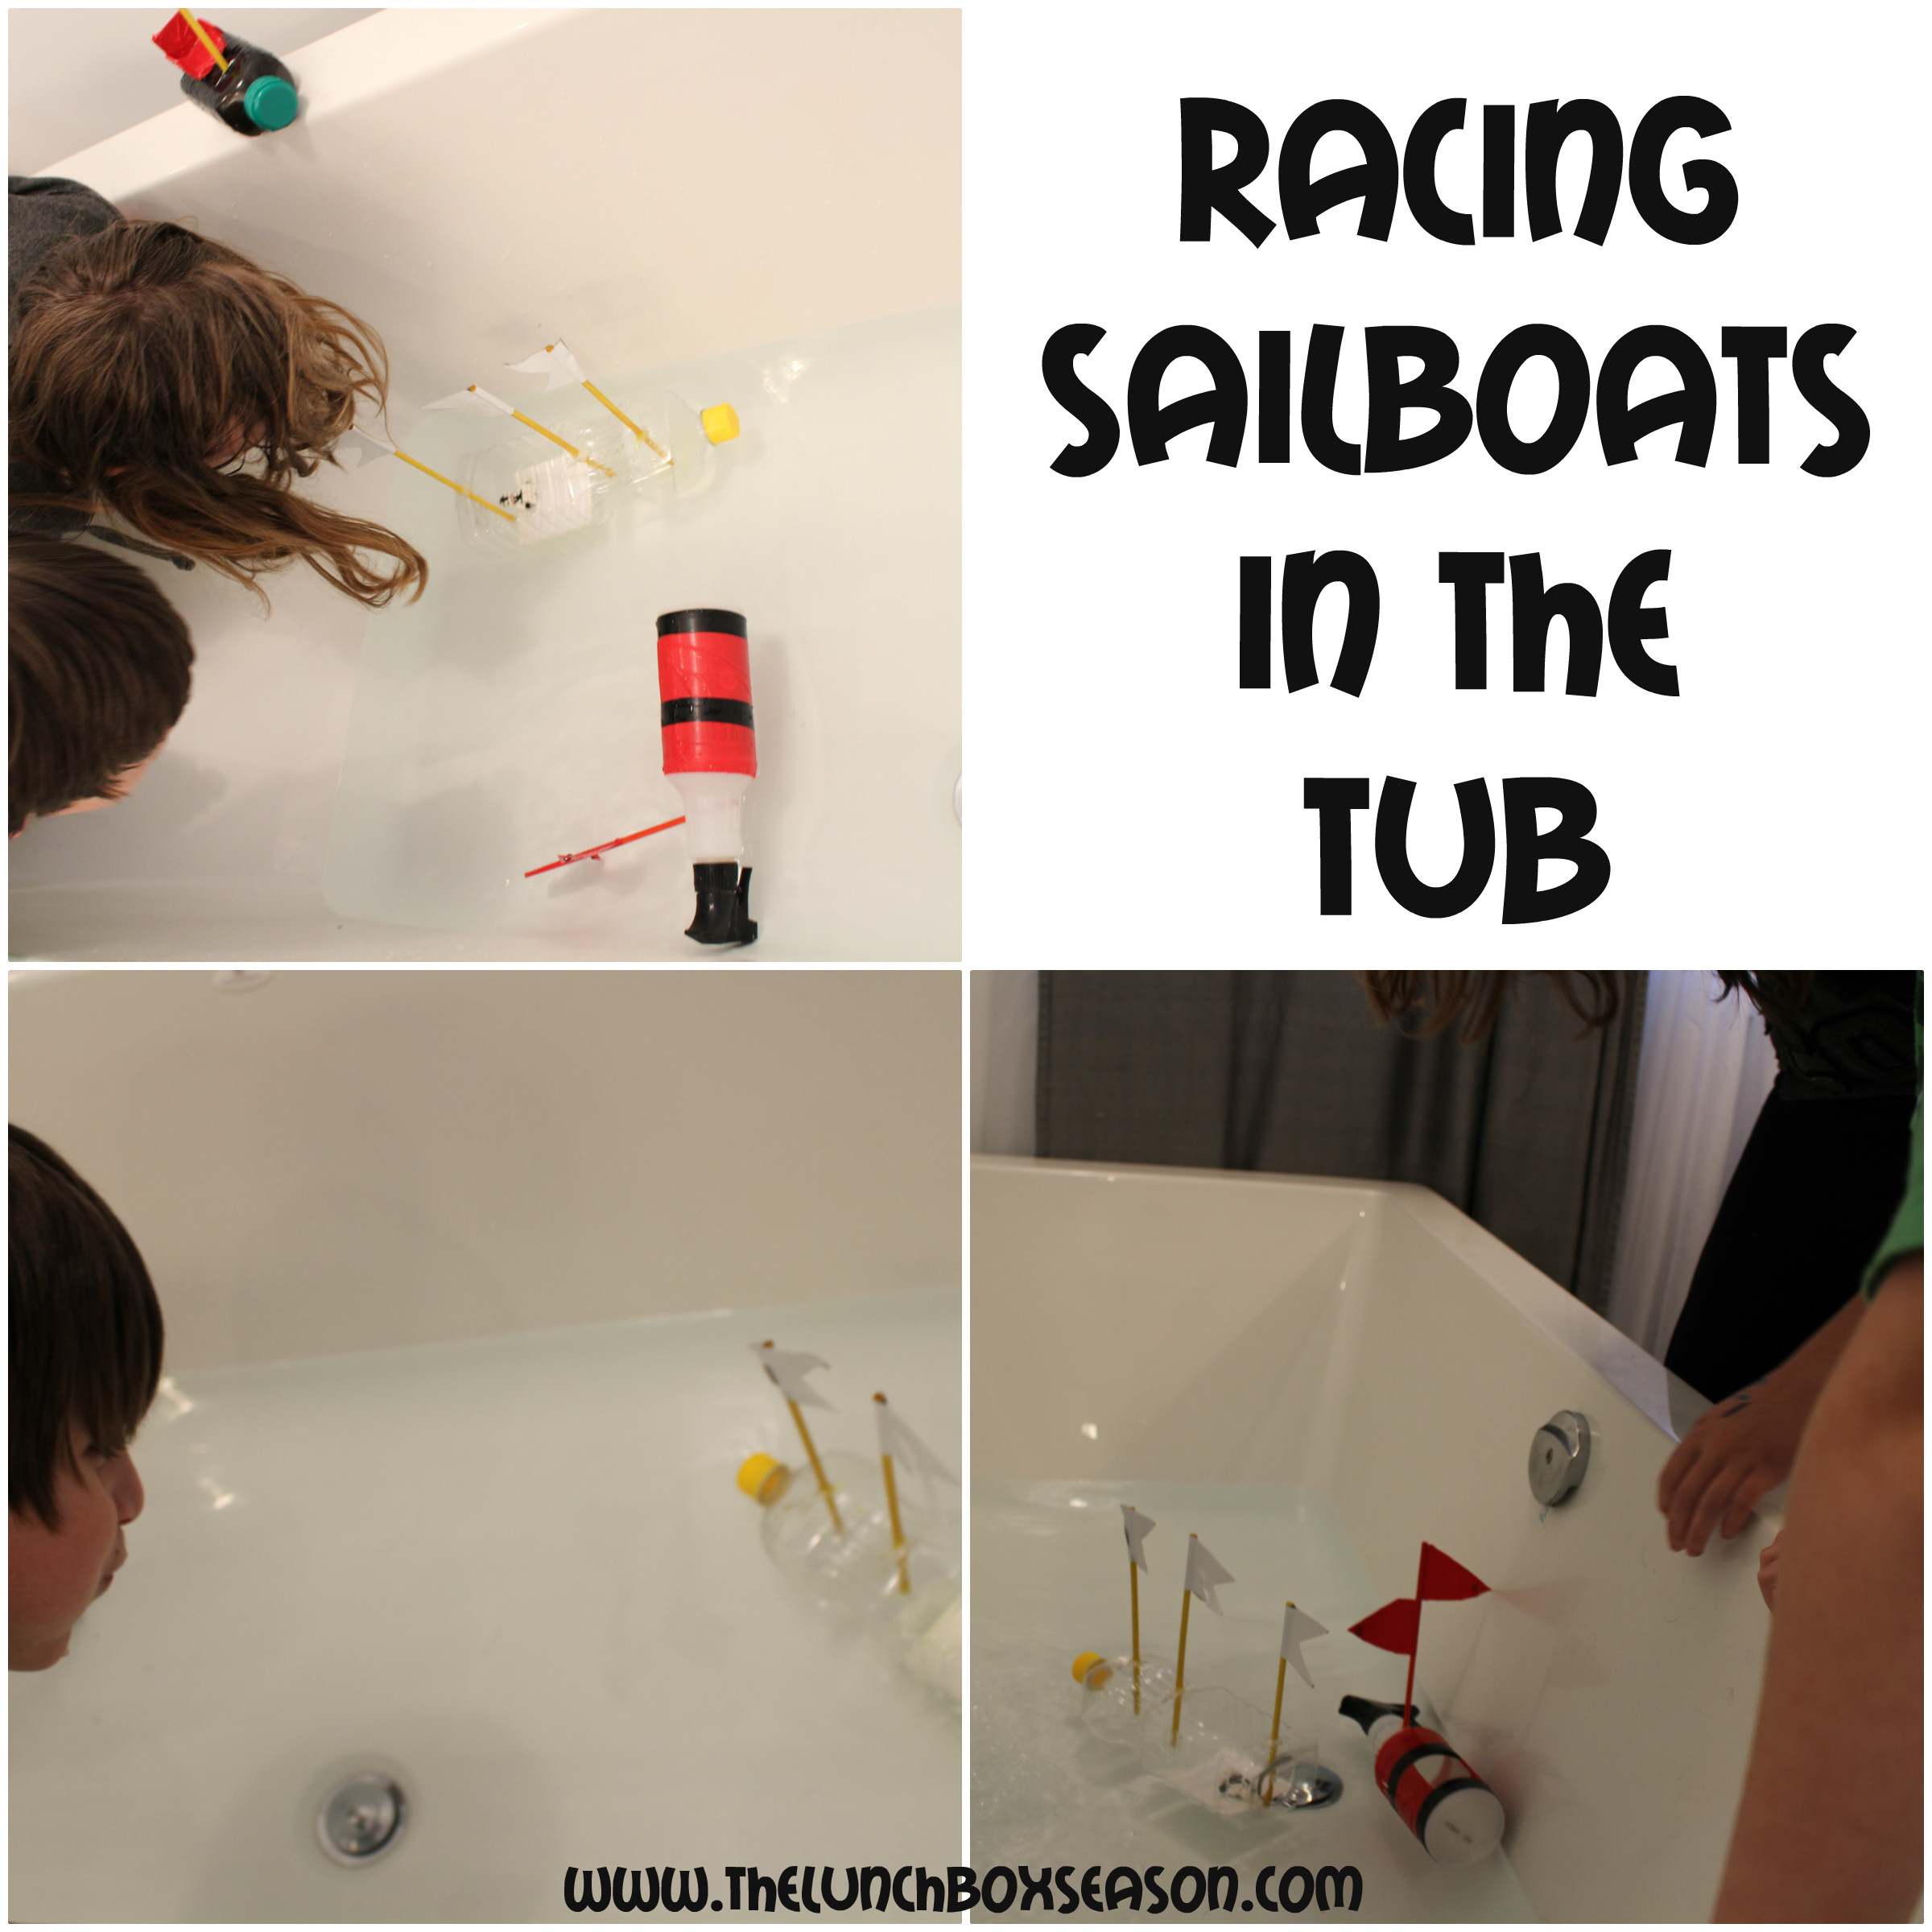 Racing Sailboats in the Tub